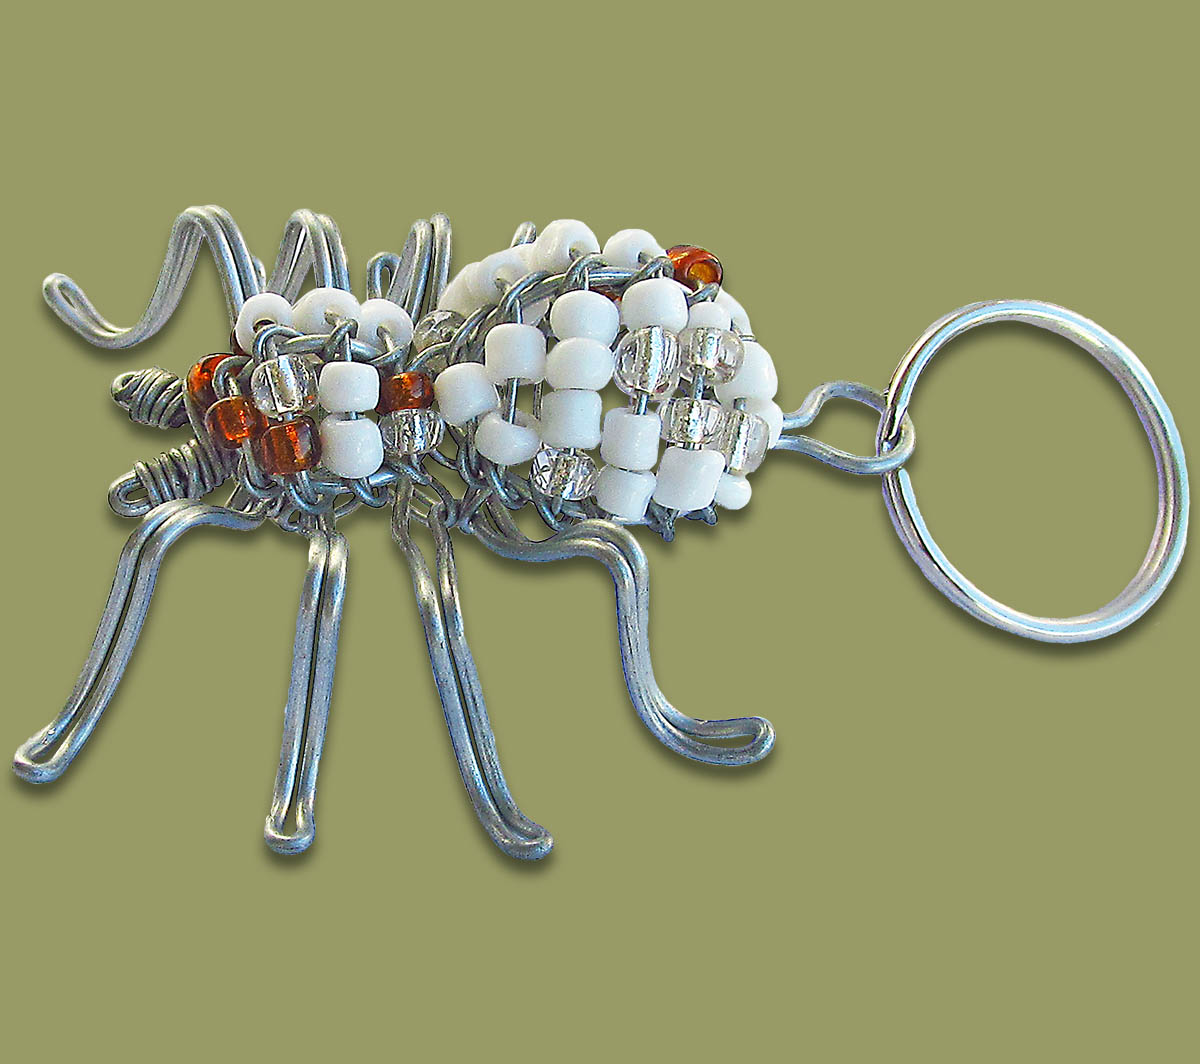 Beaded Key Ring Spider  3D